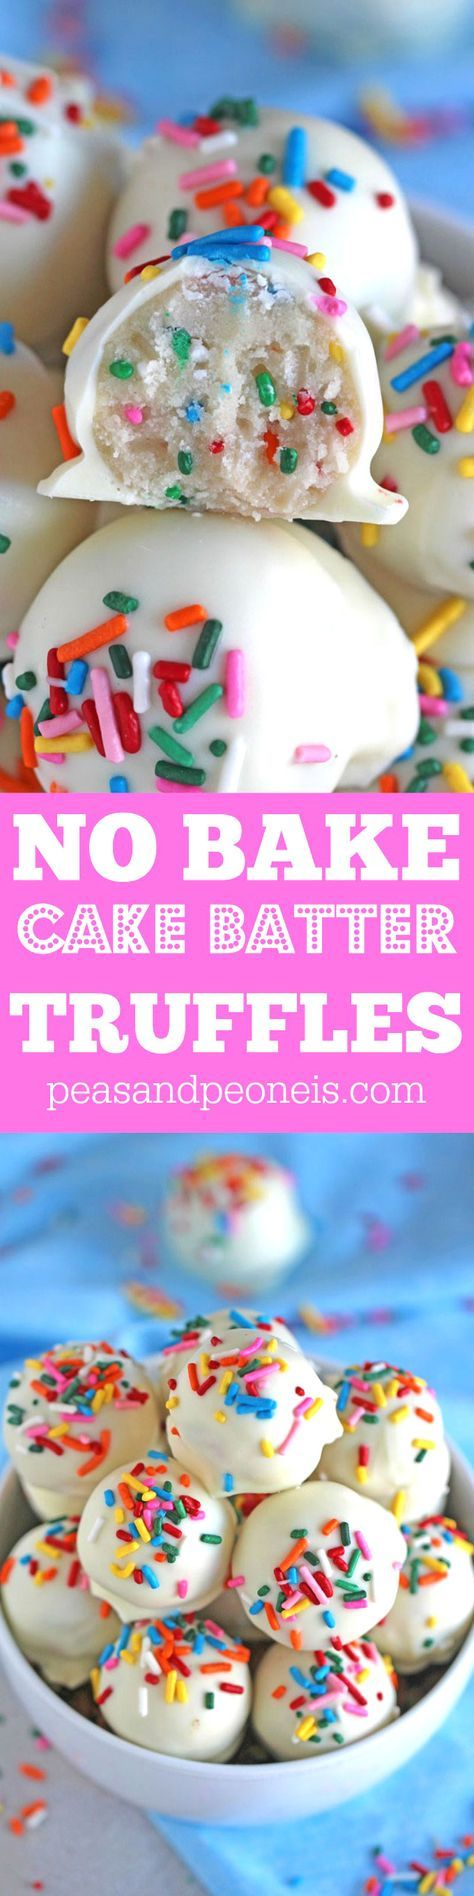 No Bake Cake Batter Truffles are very easy to make using funfetti cake mix. Loaded with lots of sprinkles and dipped in white chocolate, these are delicious. (chocolate brownie cake video)